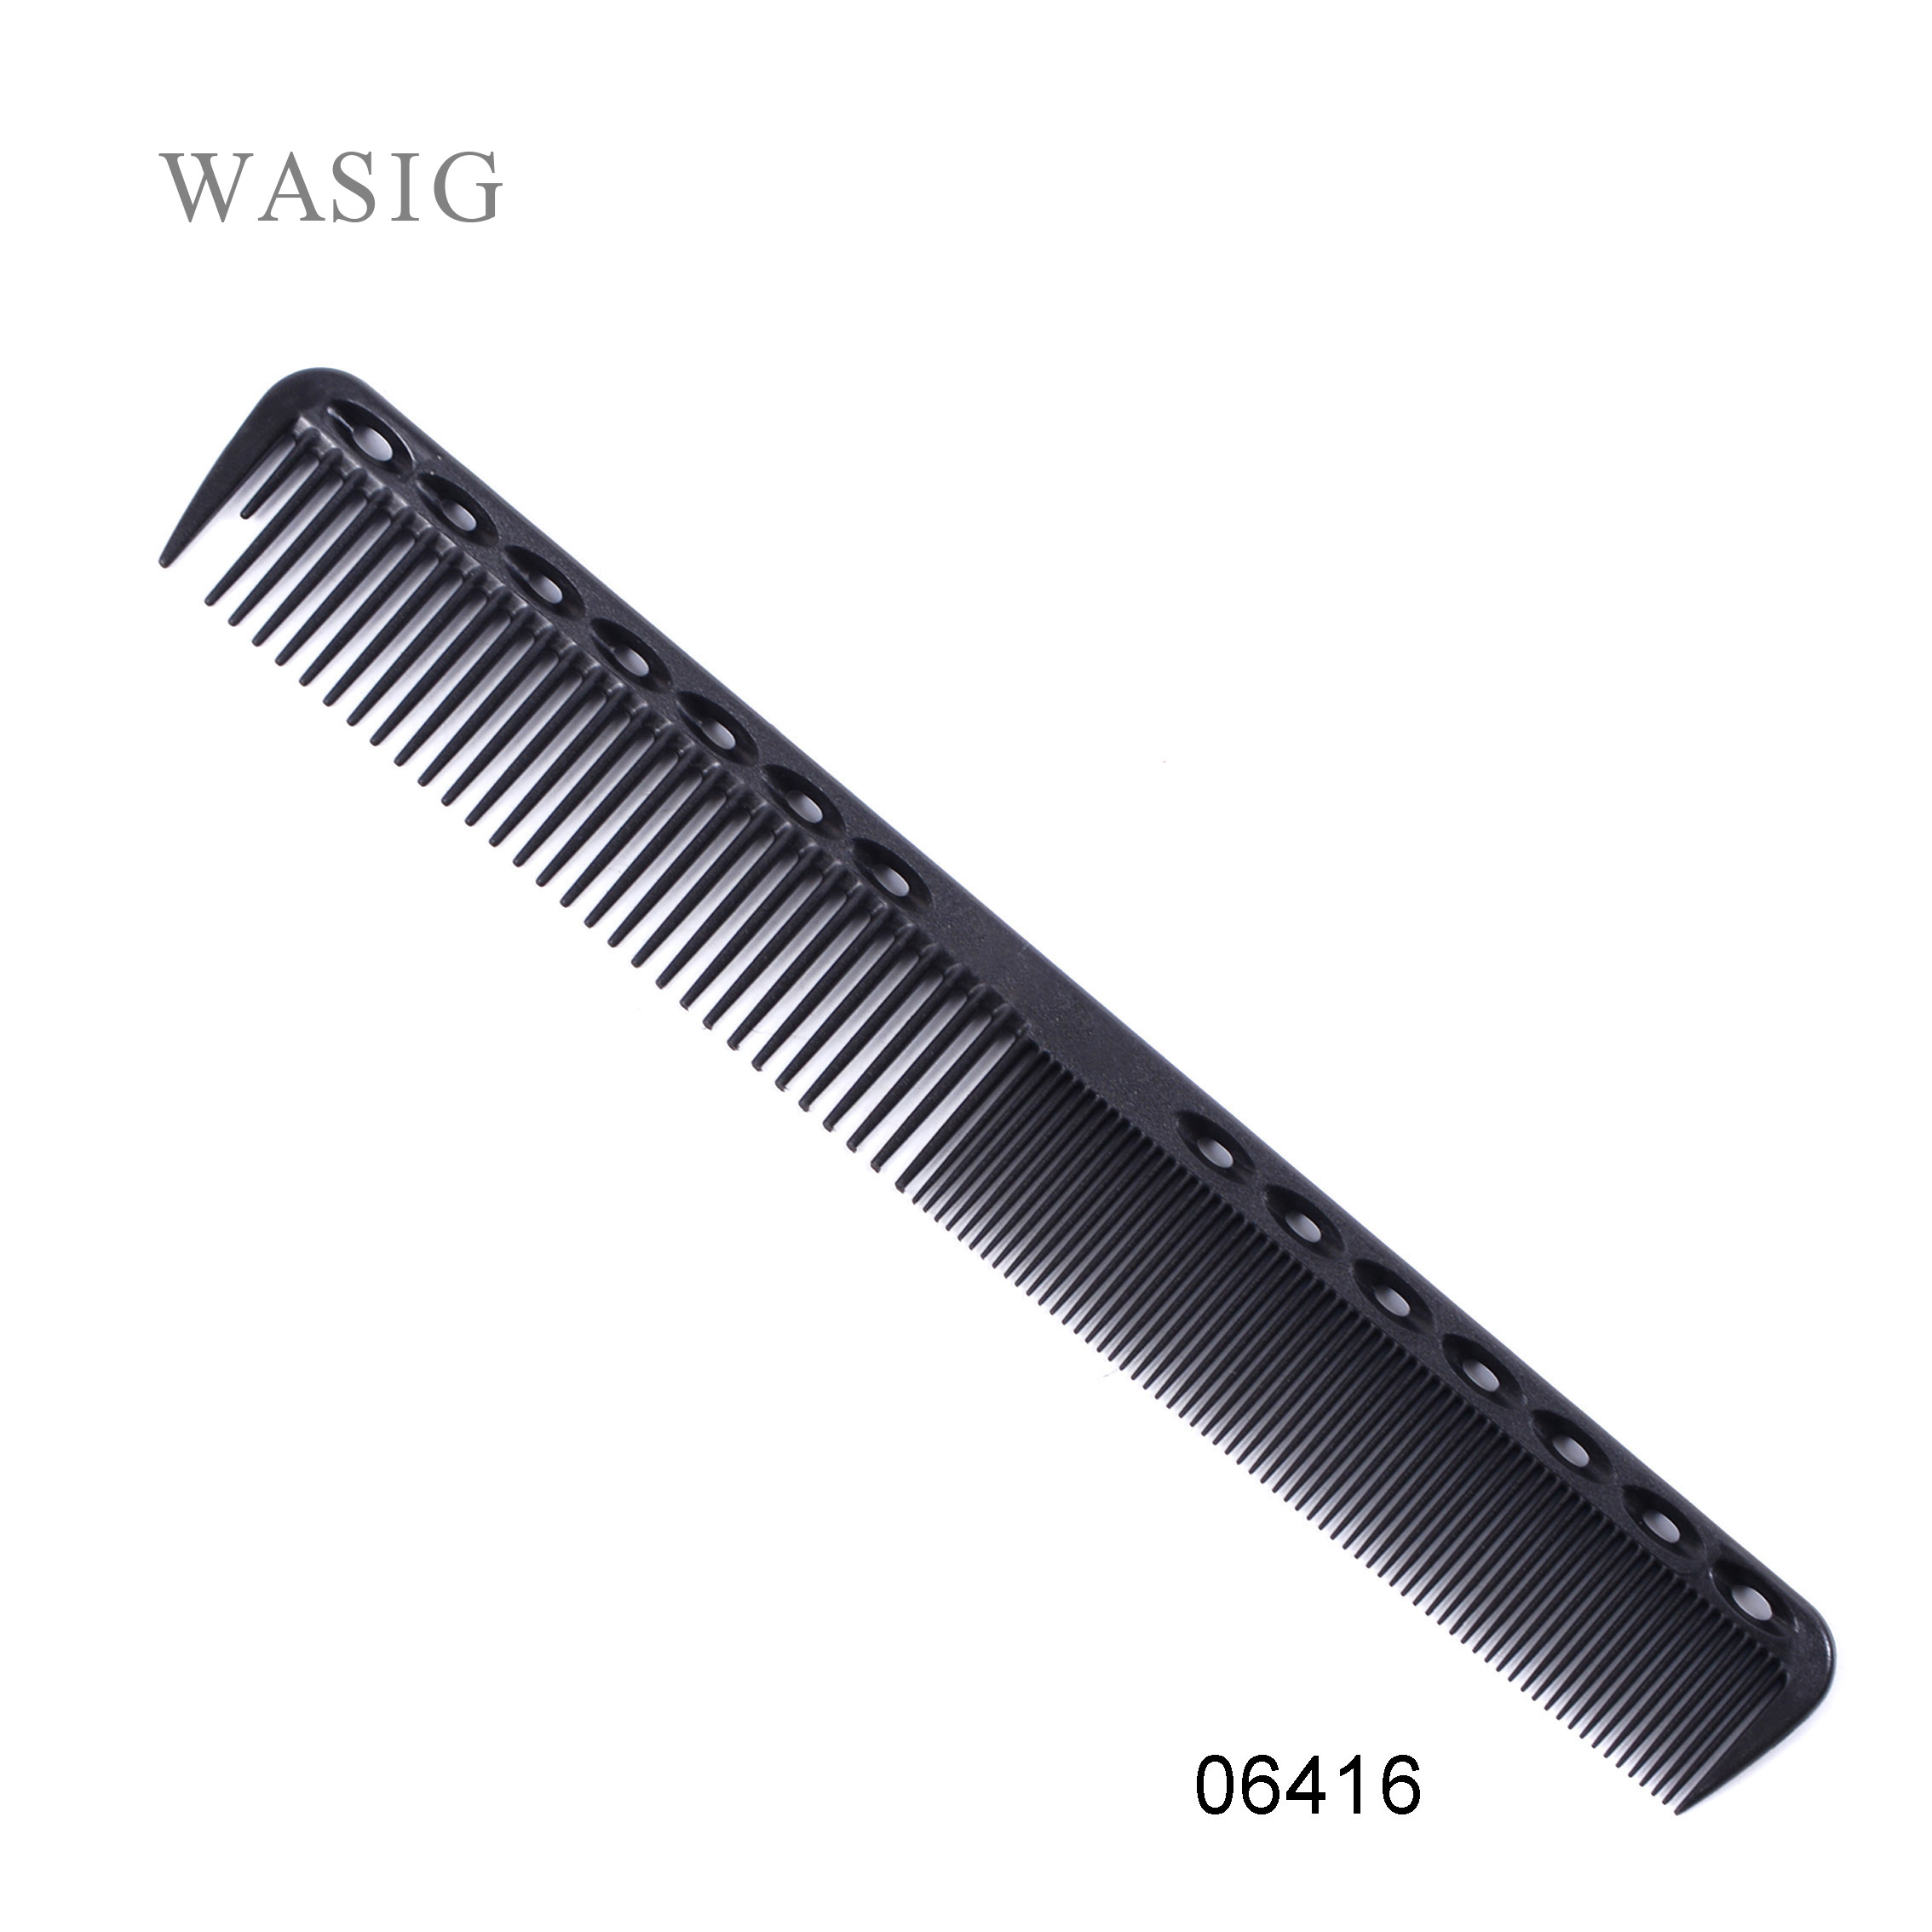 1 Pc Professional Hair Cricket Comb Heat Resistant Medium Cutting Carbon Comb Salon Antistatic Barber Styling Brush Tool(China)